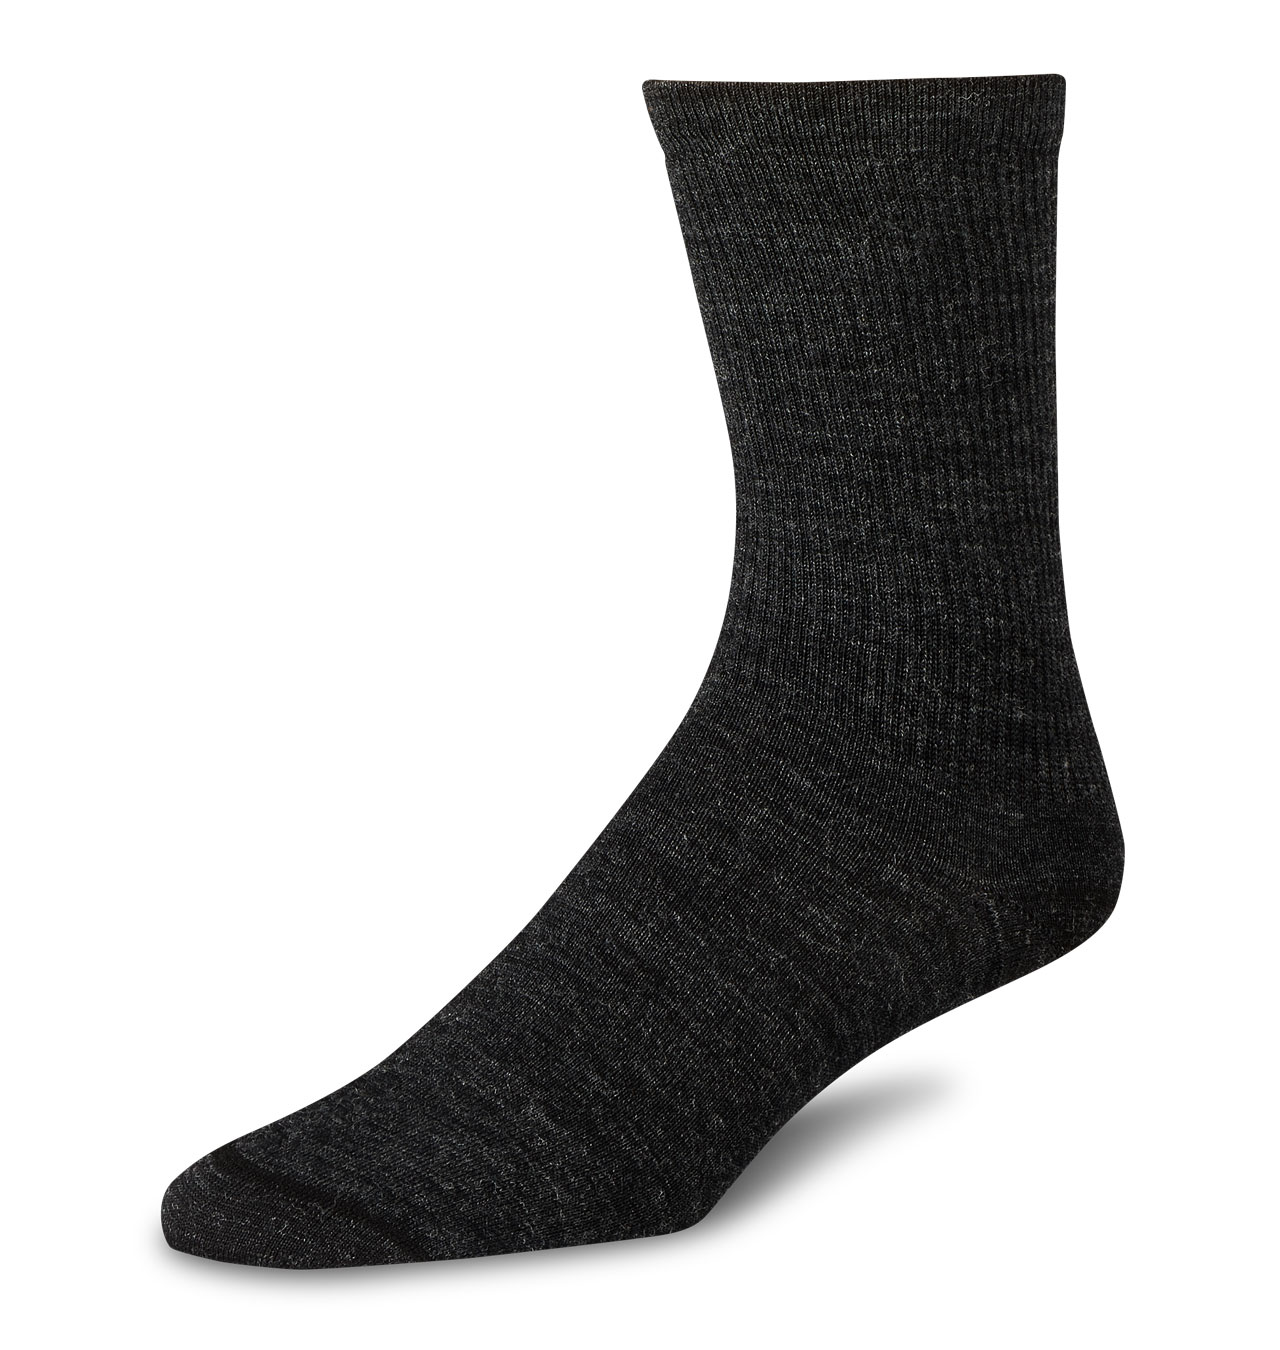 Red Wing - 97337 Wool Crew Liner Socks - Charcoal